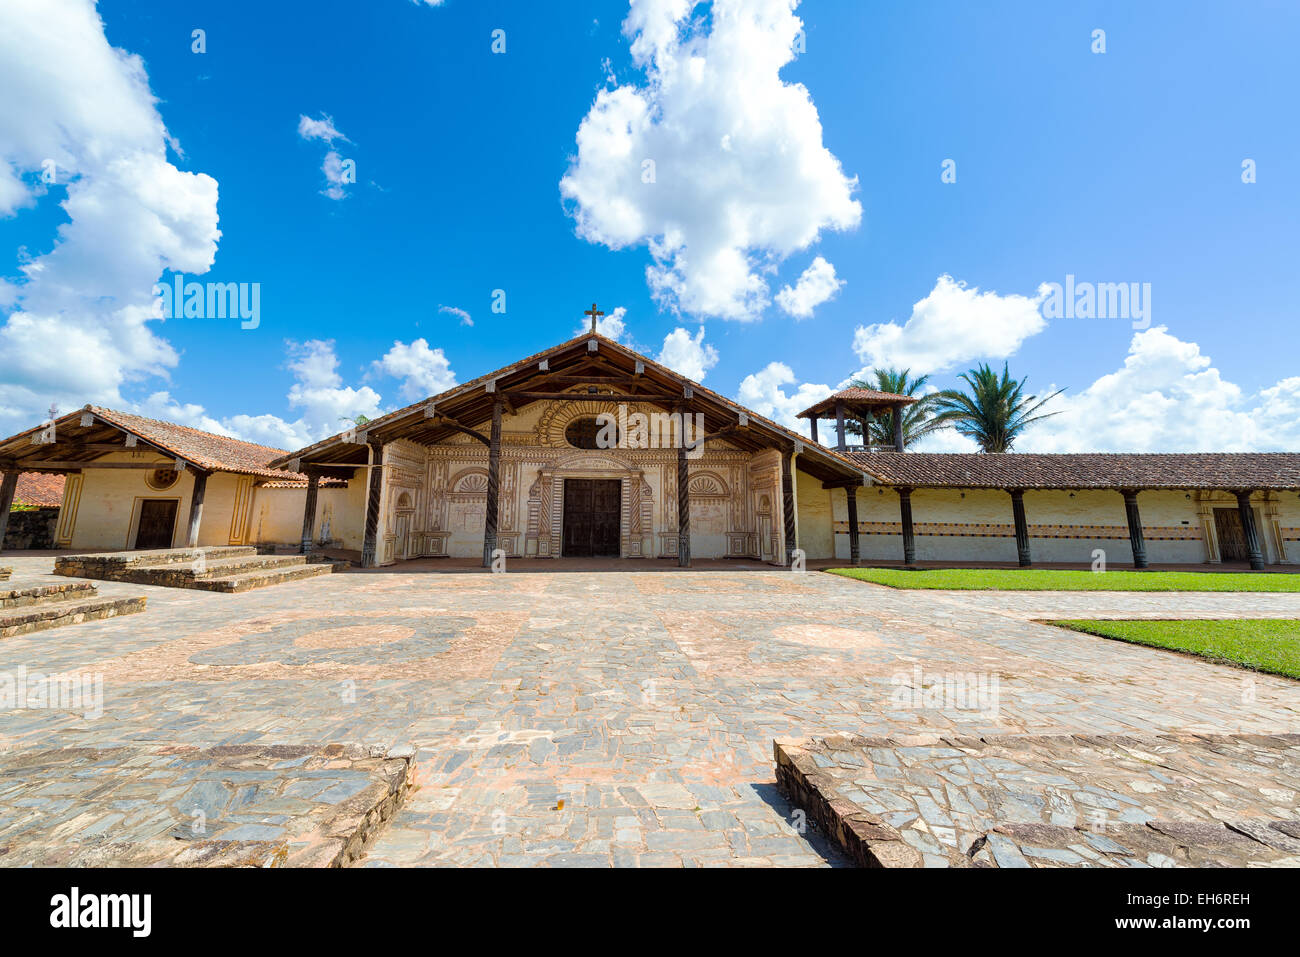 Exterior of the Jesuit Mission church in San Javier, Bolivia - Stock Image